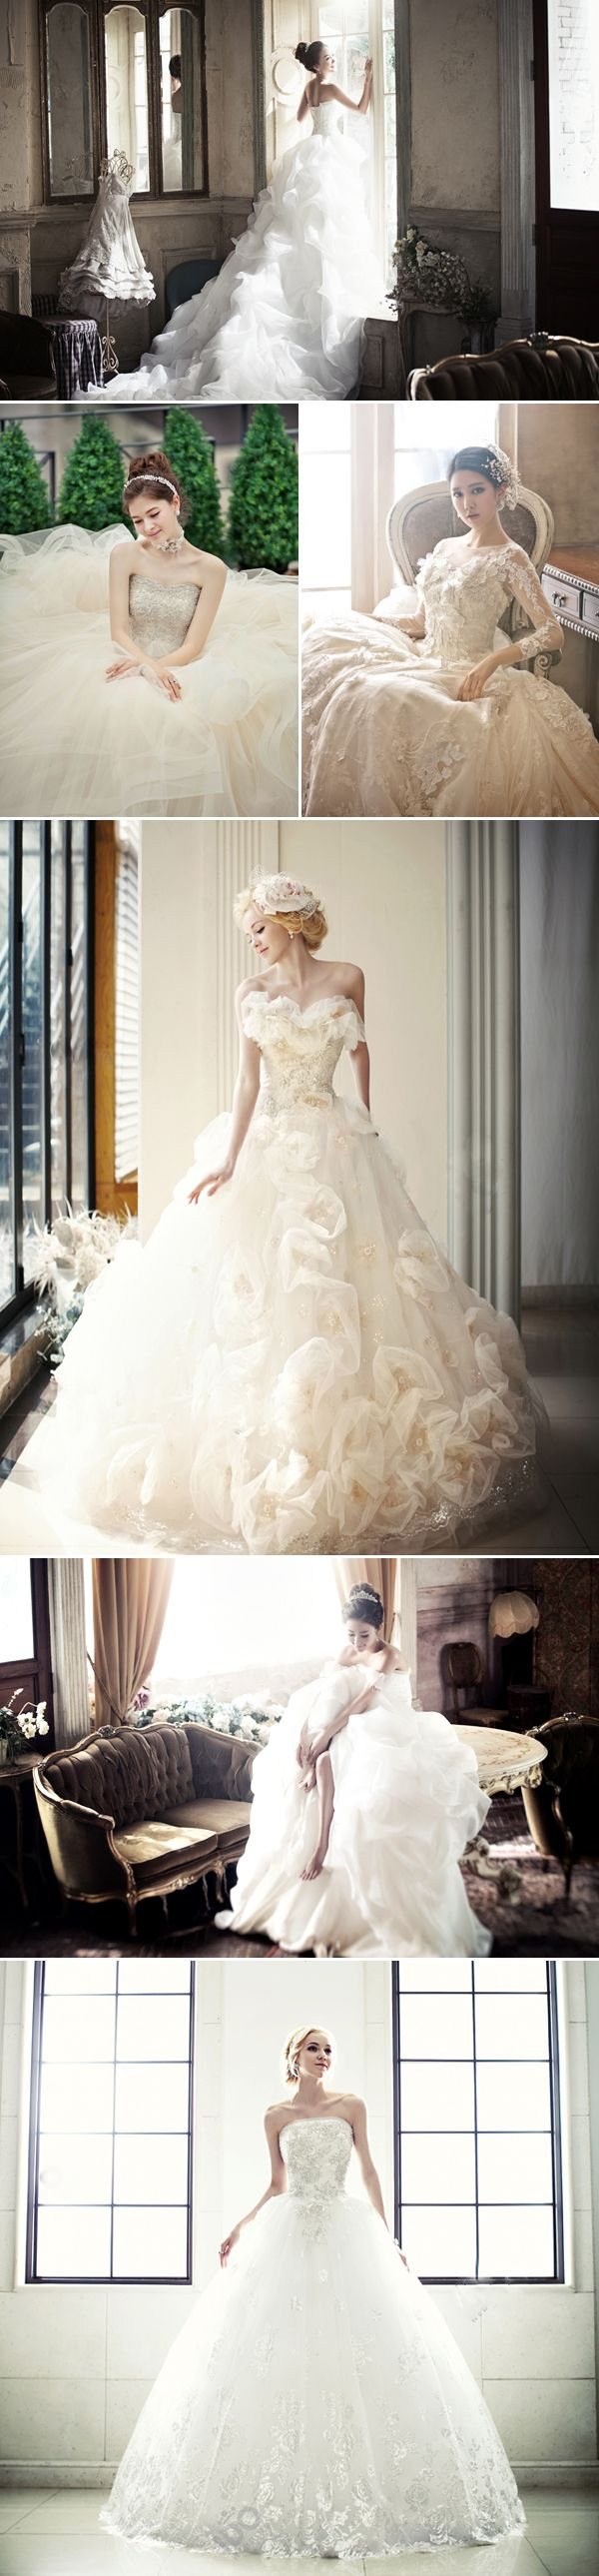 For brides who want to look and feel like a royal princess or queen on their wedding day, today's inspiration is handpicked for you. Classic princess ball gowns are all about romance with lace accents, intricate embroidery, voluminous gowns, and elegant silhouettes. Let these gorgeous princess-worthy wedding dresses below fulfill your childhood dreams.   Lazaro …